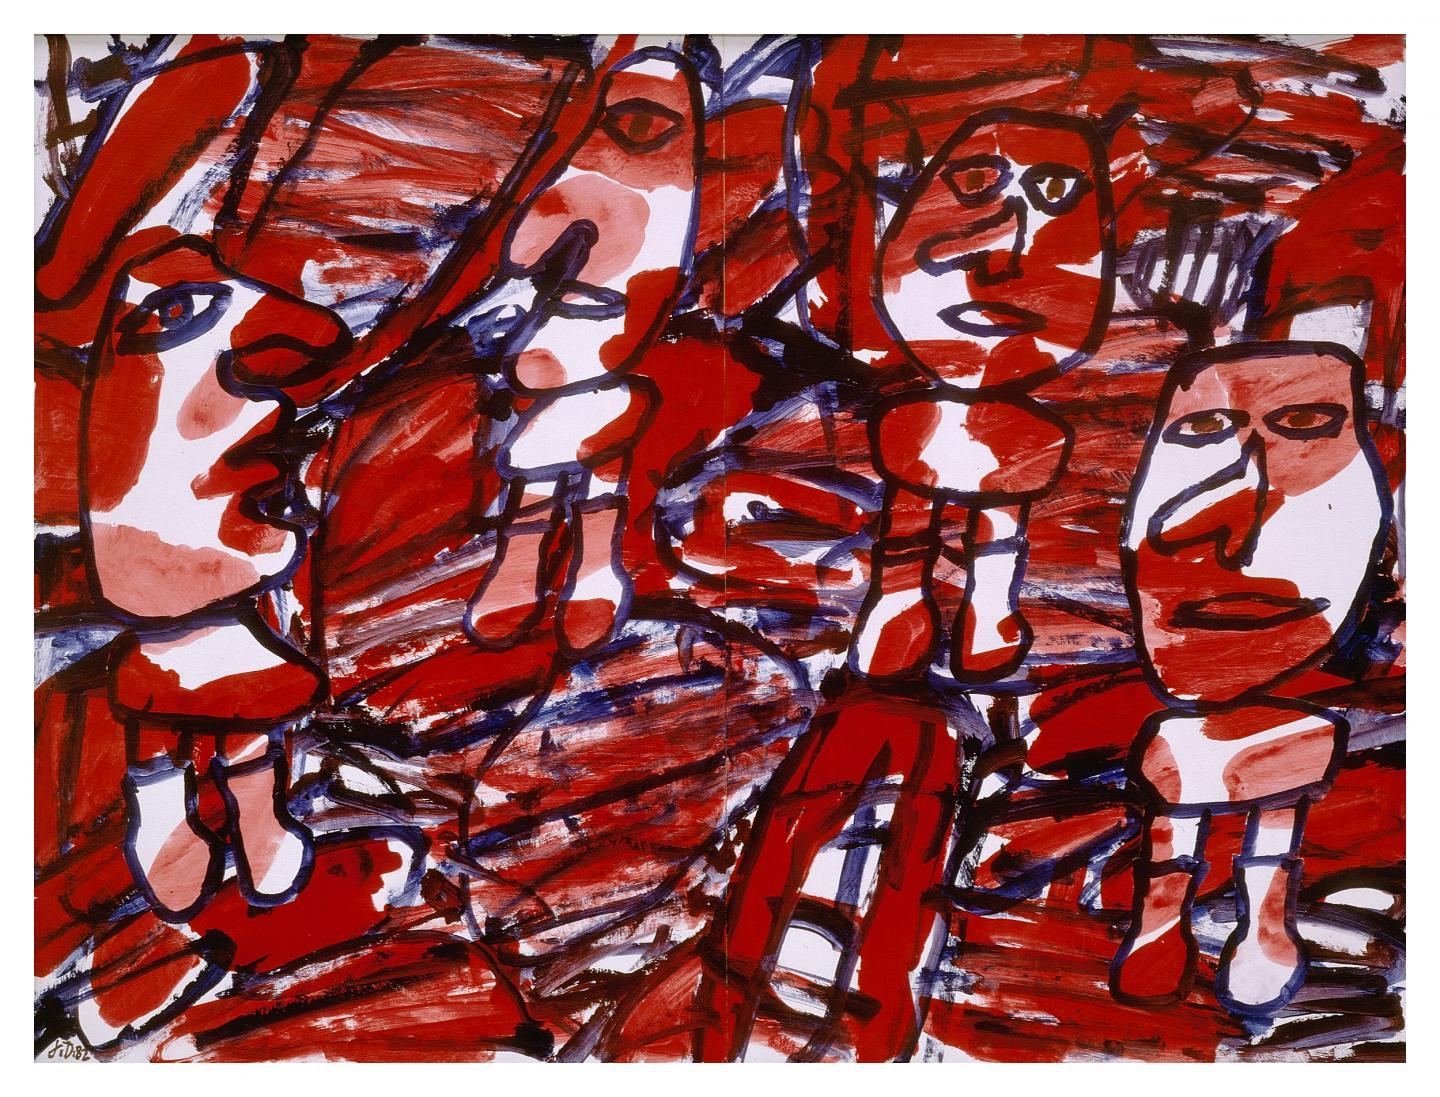 Bon courage Jean Dubuffet 24 mai 1982 Acryle sur papier (avec 4 pièces rapportées collées). 100 x 134 cm Collection Fondation Dubuffet, Paris Photo :pour la Suisse © Fondation Dubuffet / 2020, ProLitteris, Zurich pour la France © Fondation Dubuffet / 2020, ADAGP, Paris